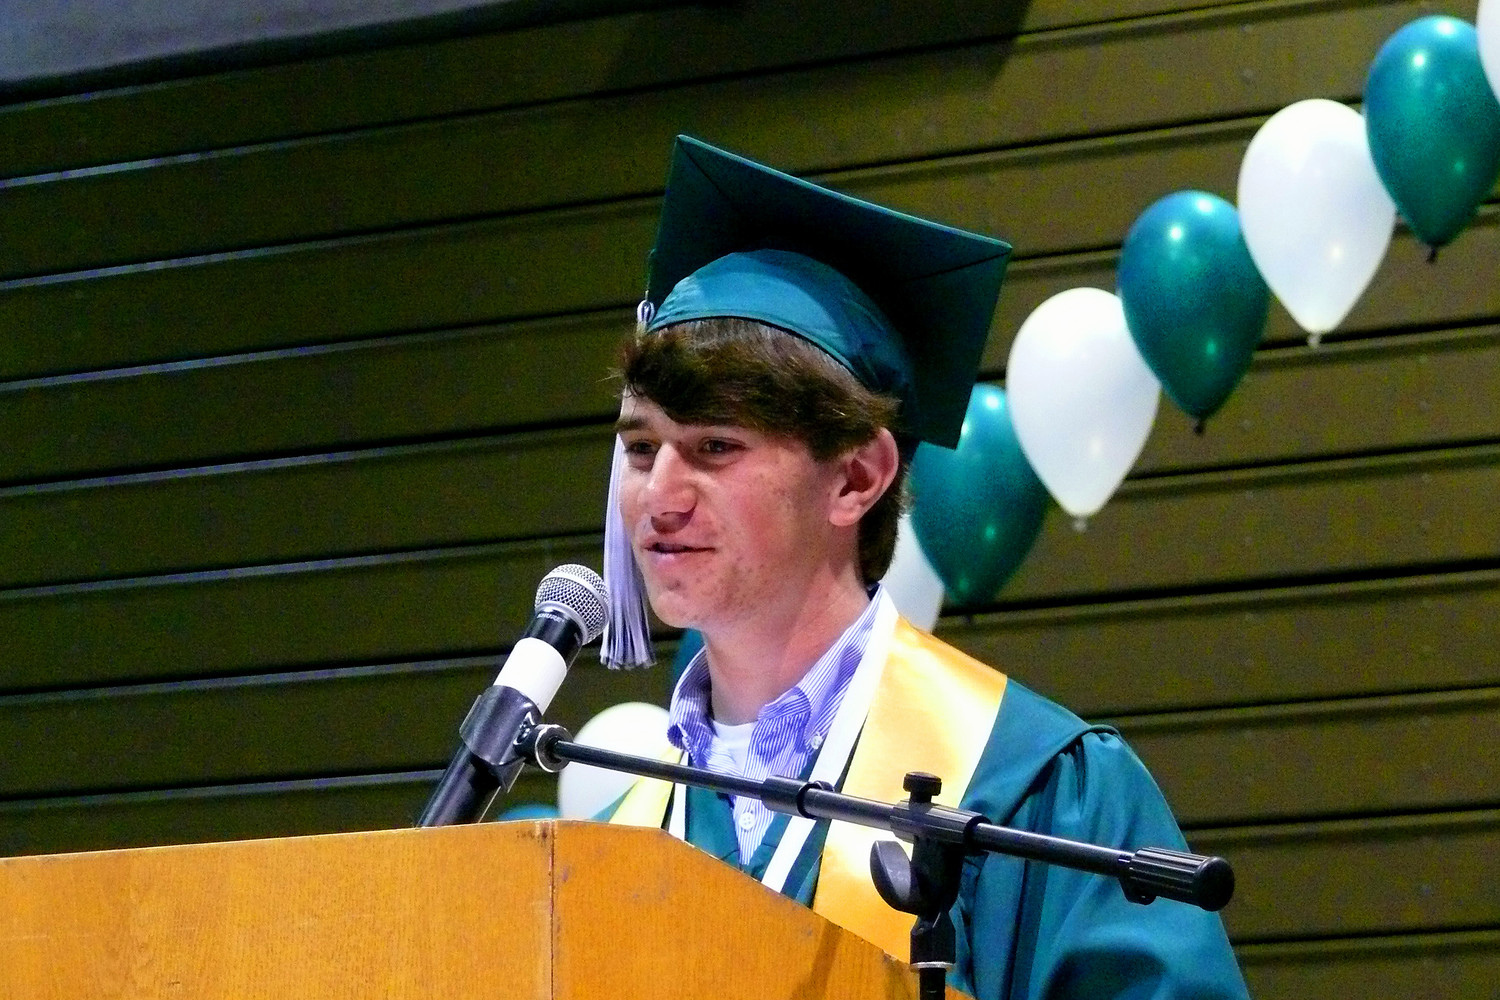 Valedictorian Jordan Ament told his fellow graduates to use the voices they developed in high school for good in the future.